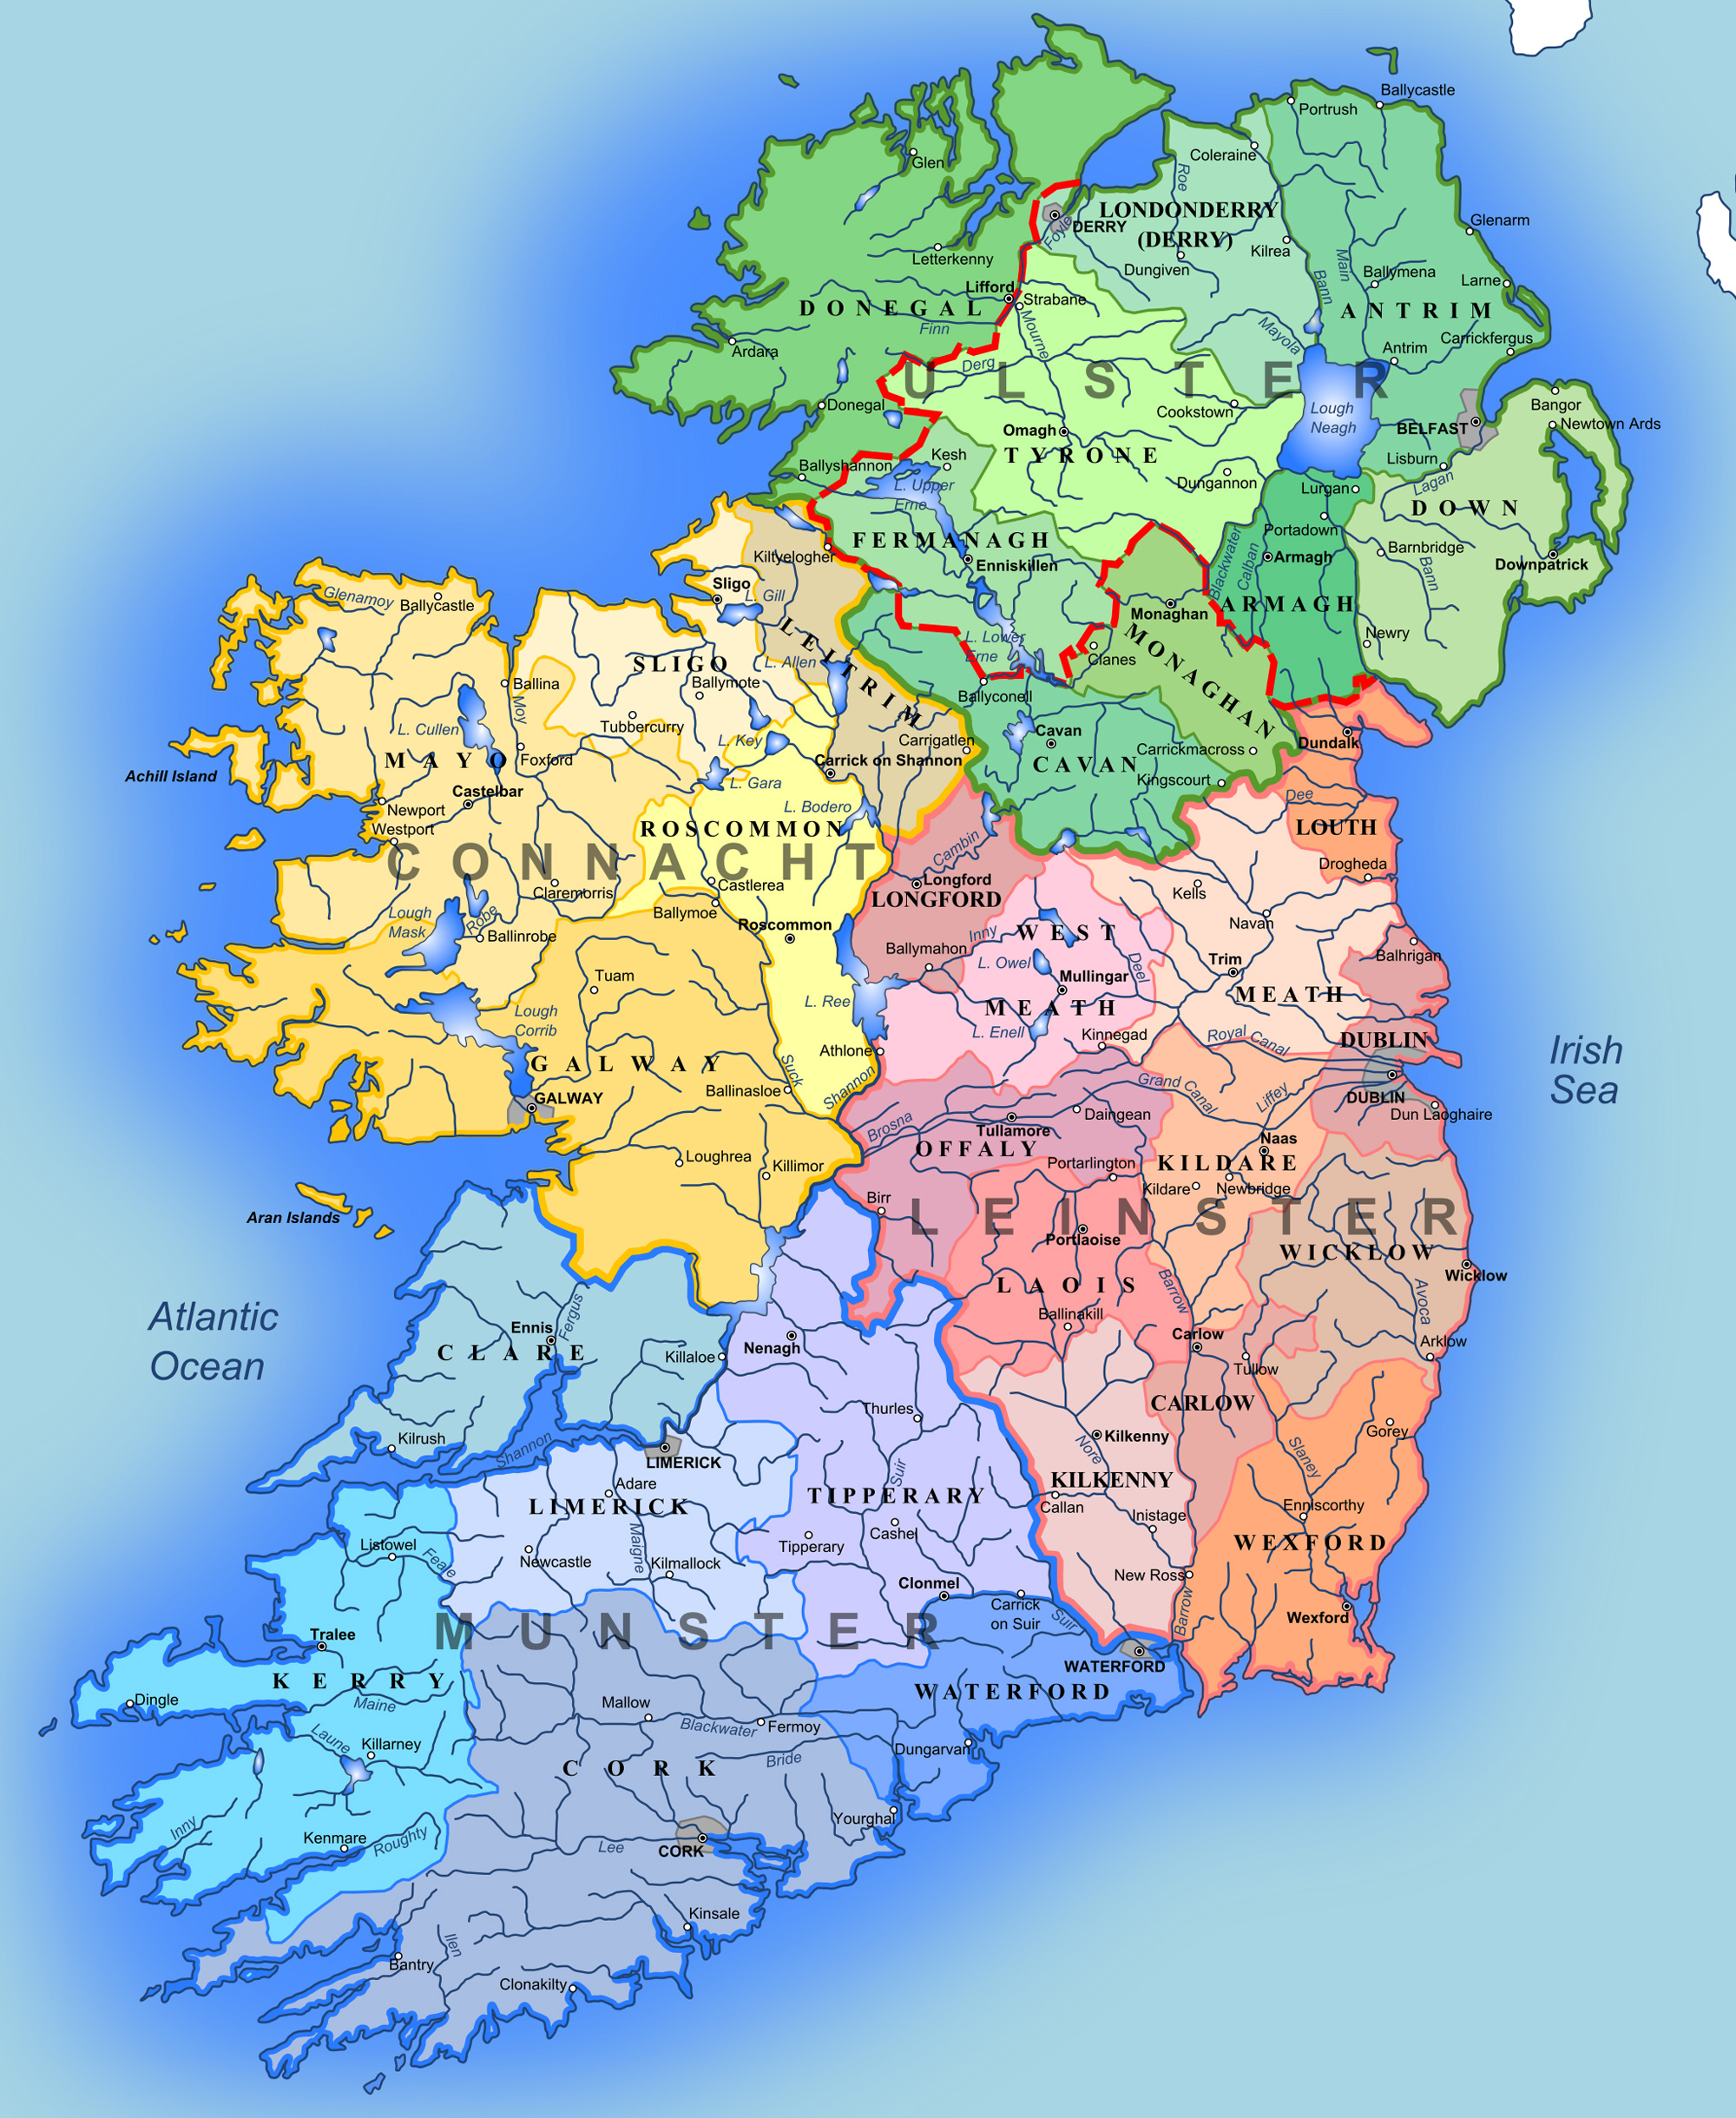 Administrative Map of Ireland